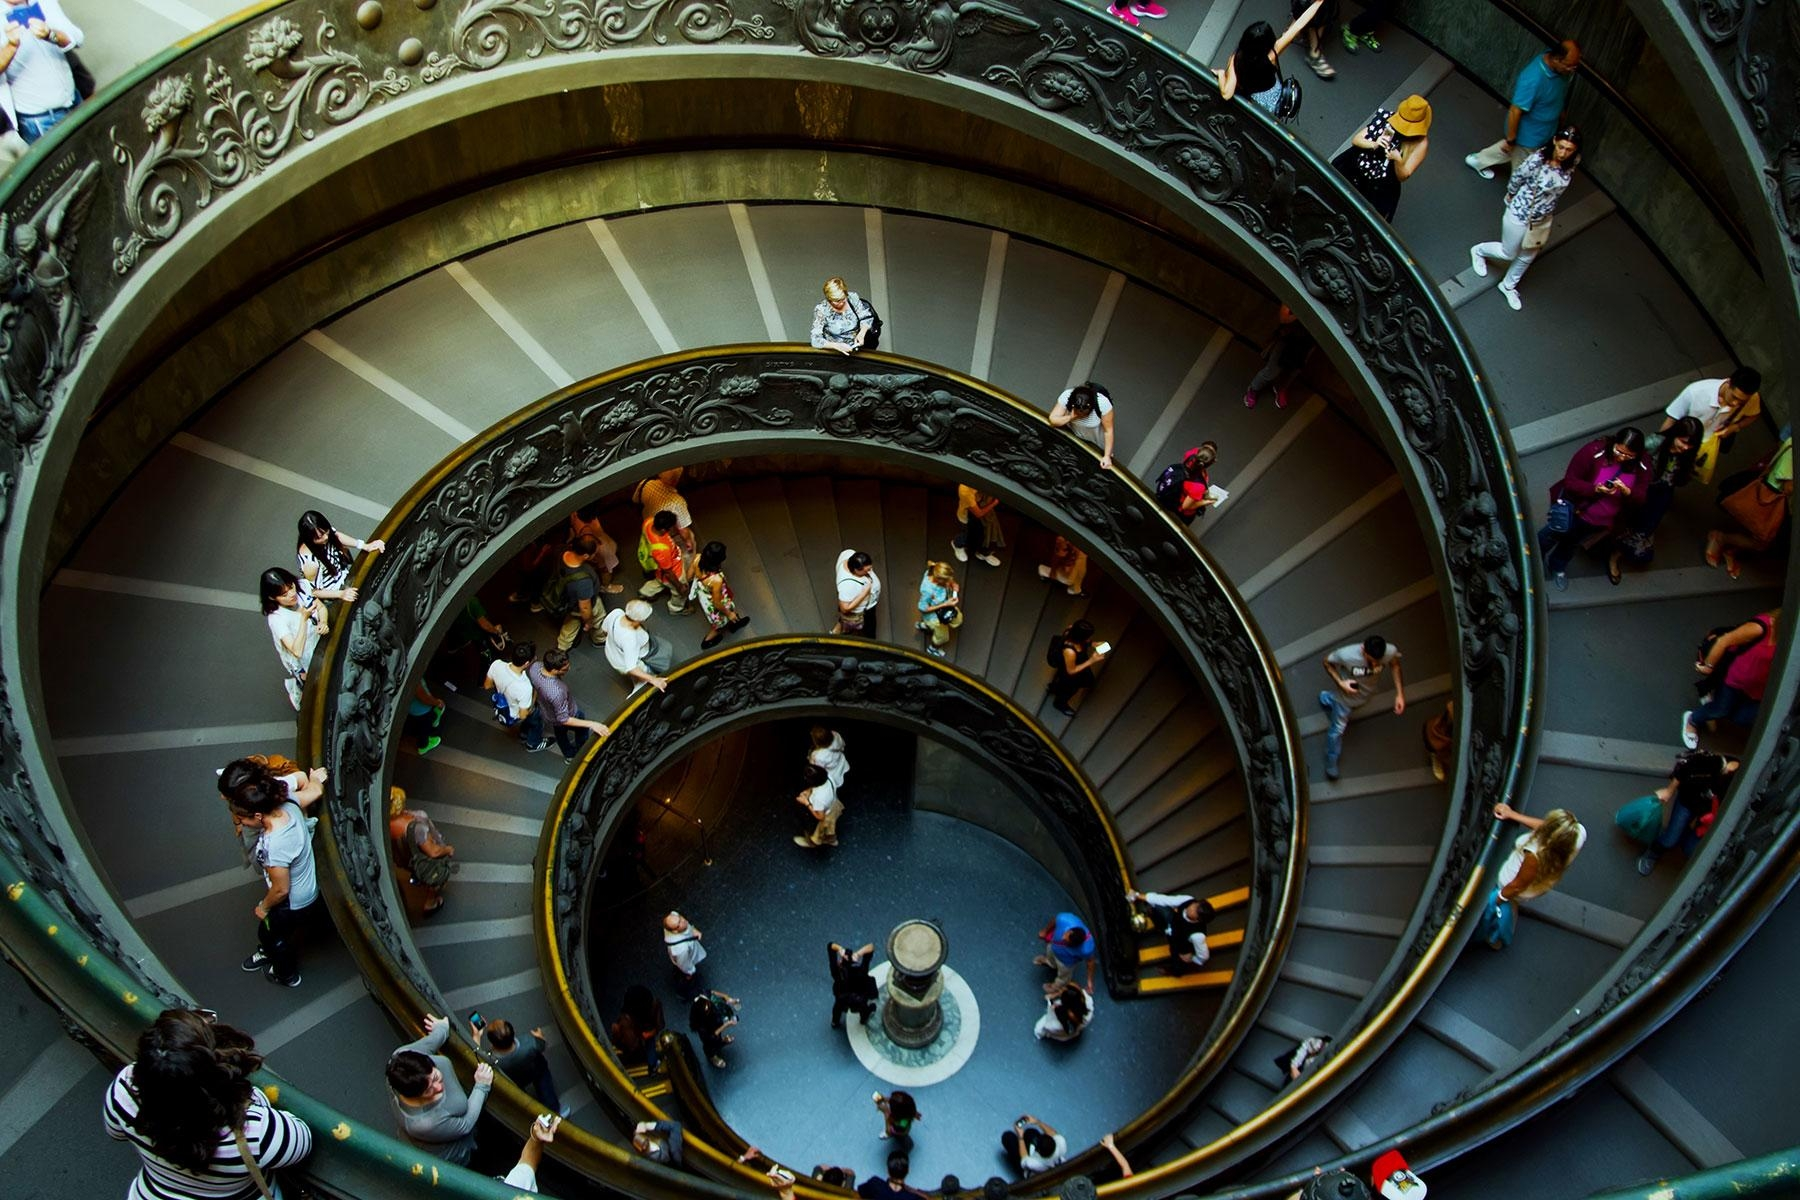 The 20 Most Incredible Staircases In The World – Fodors Travel Guide | Self Supporting Spiral Staircase | Stairway | Concrete | Supporting Structure | Santa Fe | London Uk